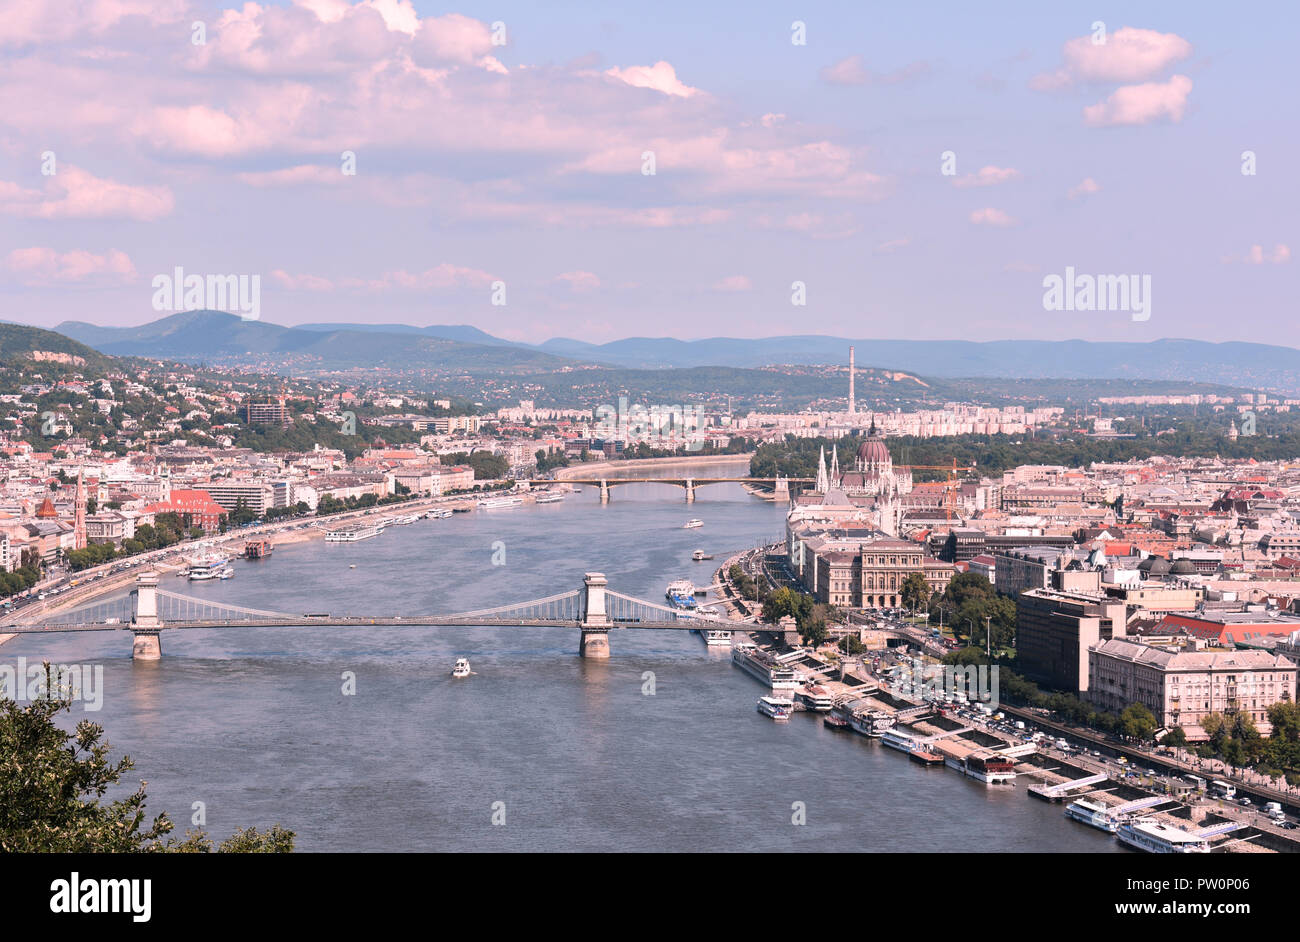 Budapest Arial View August 2018 - Stock Image